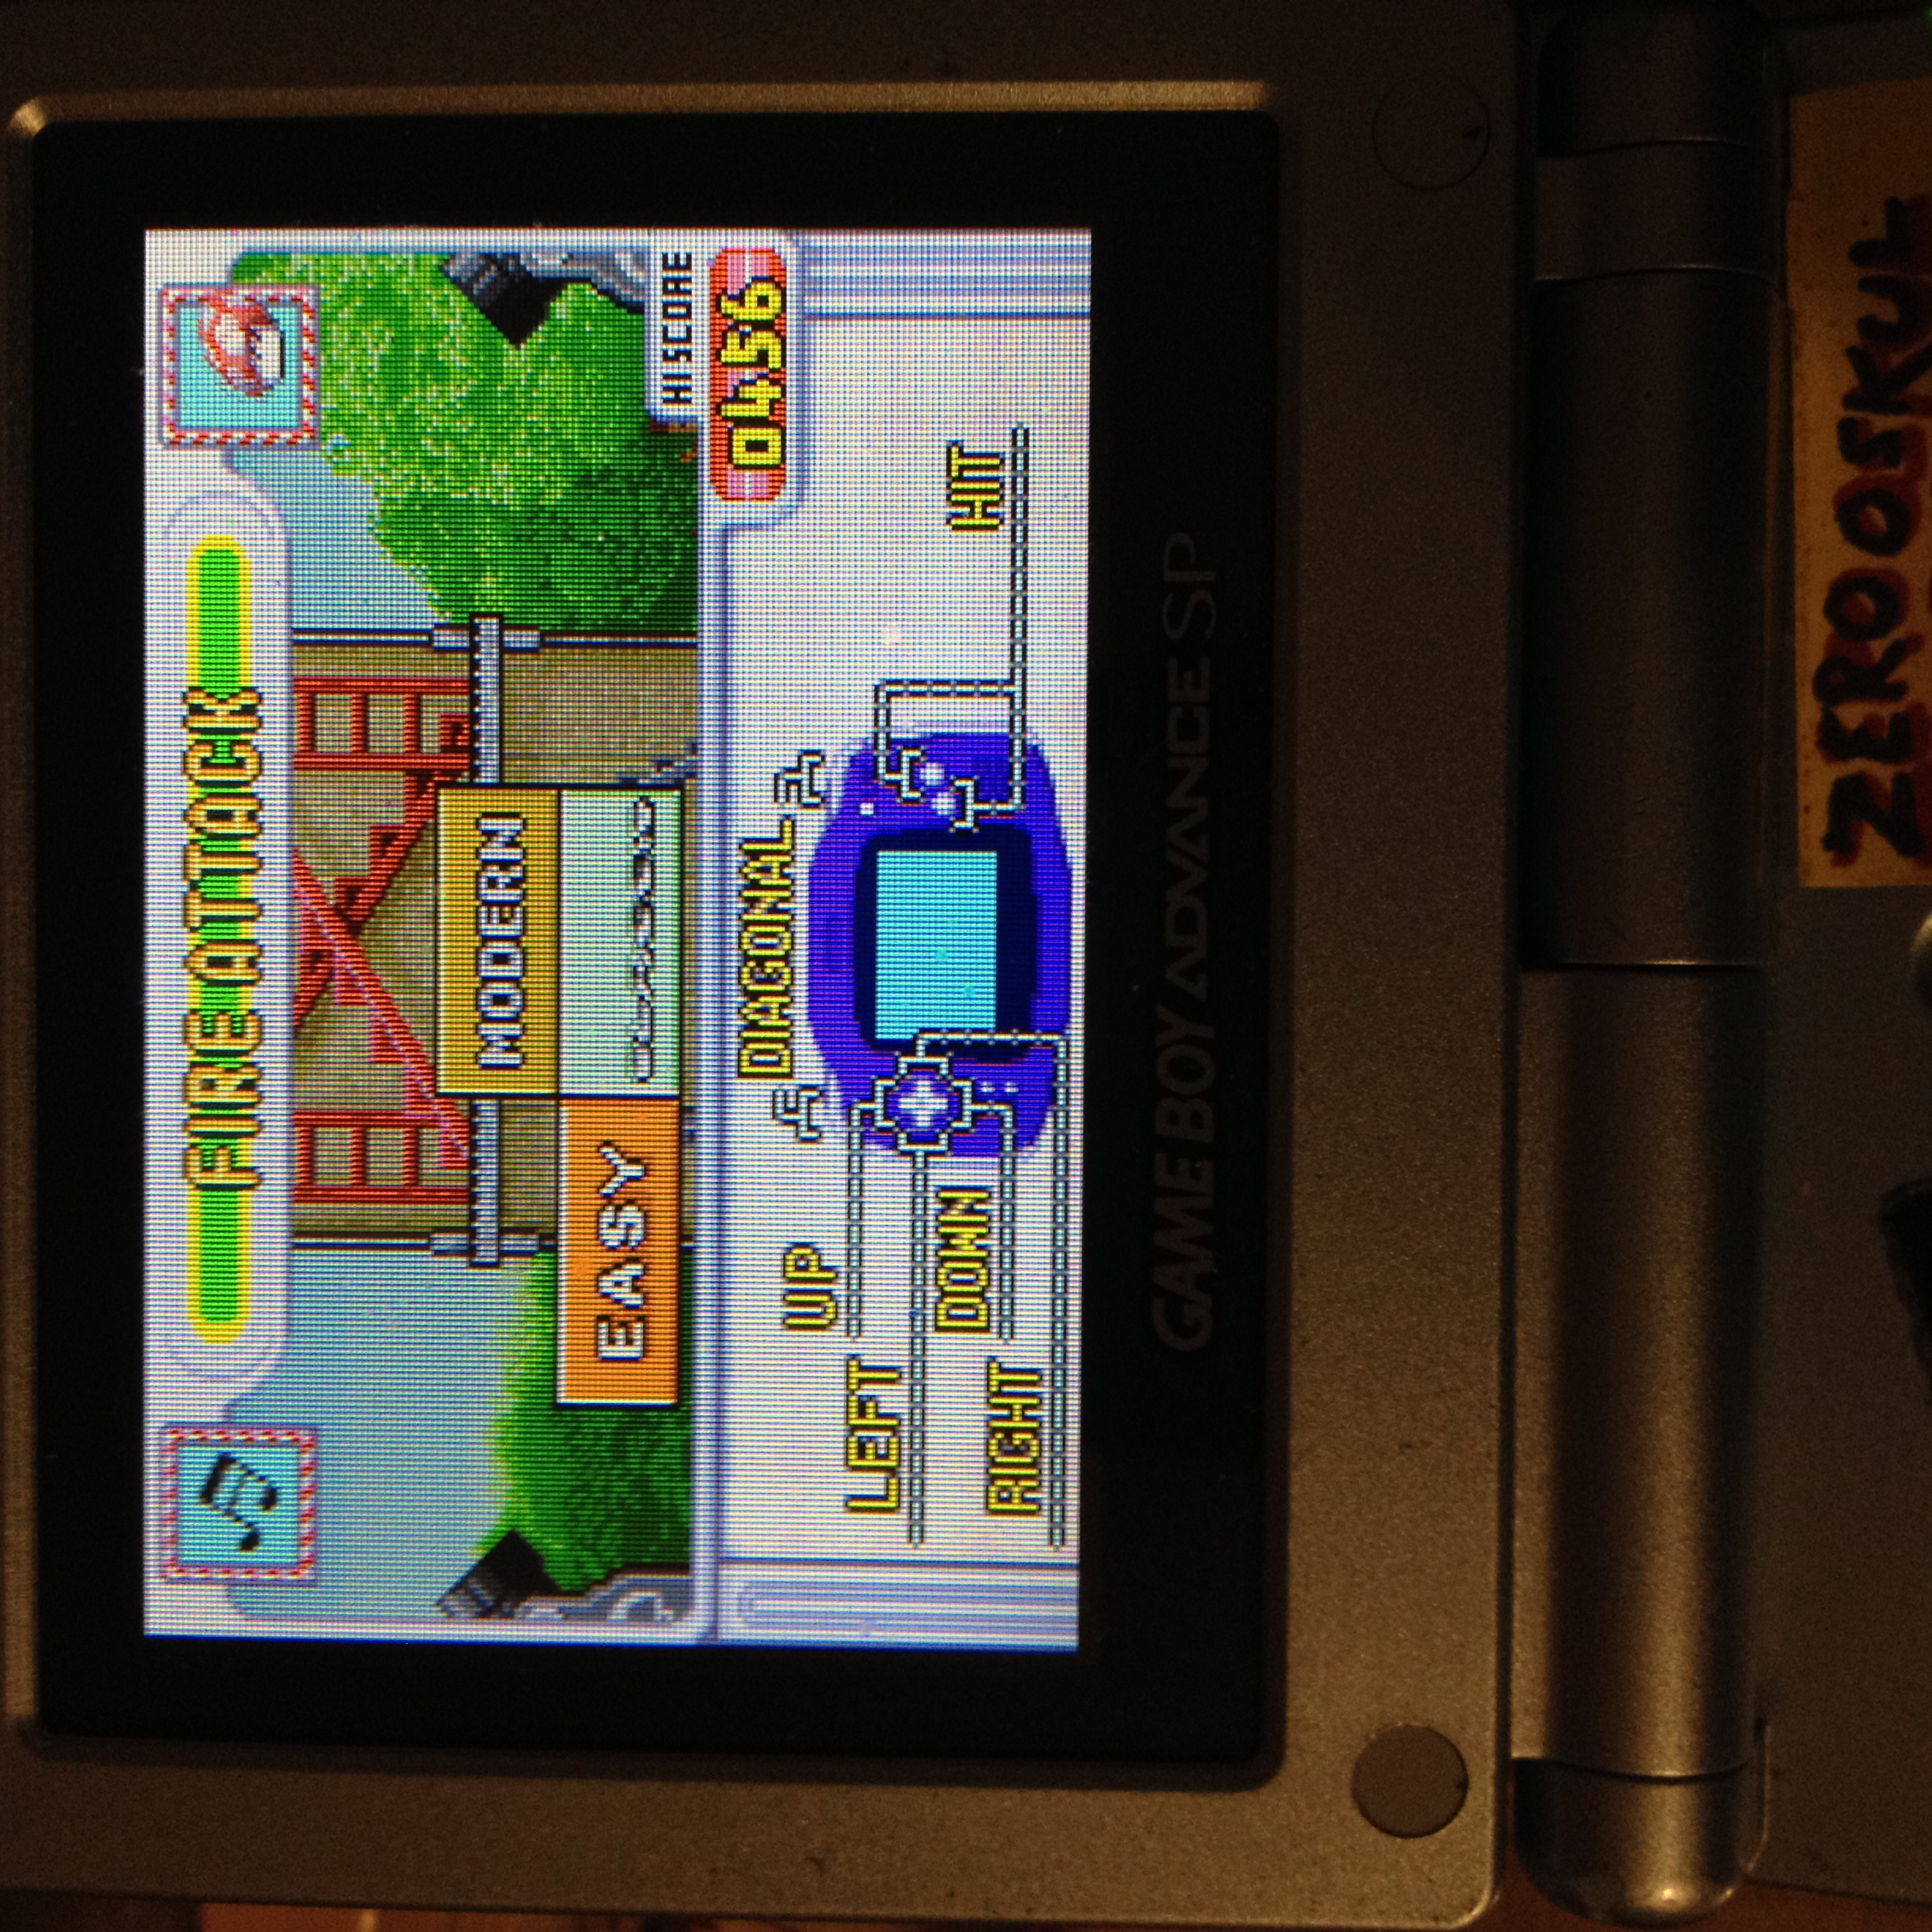 zerooskul: Game & Watch Gallery 4: Fire Attack [Classic: Easy] (GBA) 456 points on 2019-08-11 02:05:32